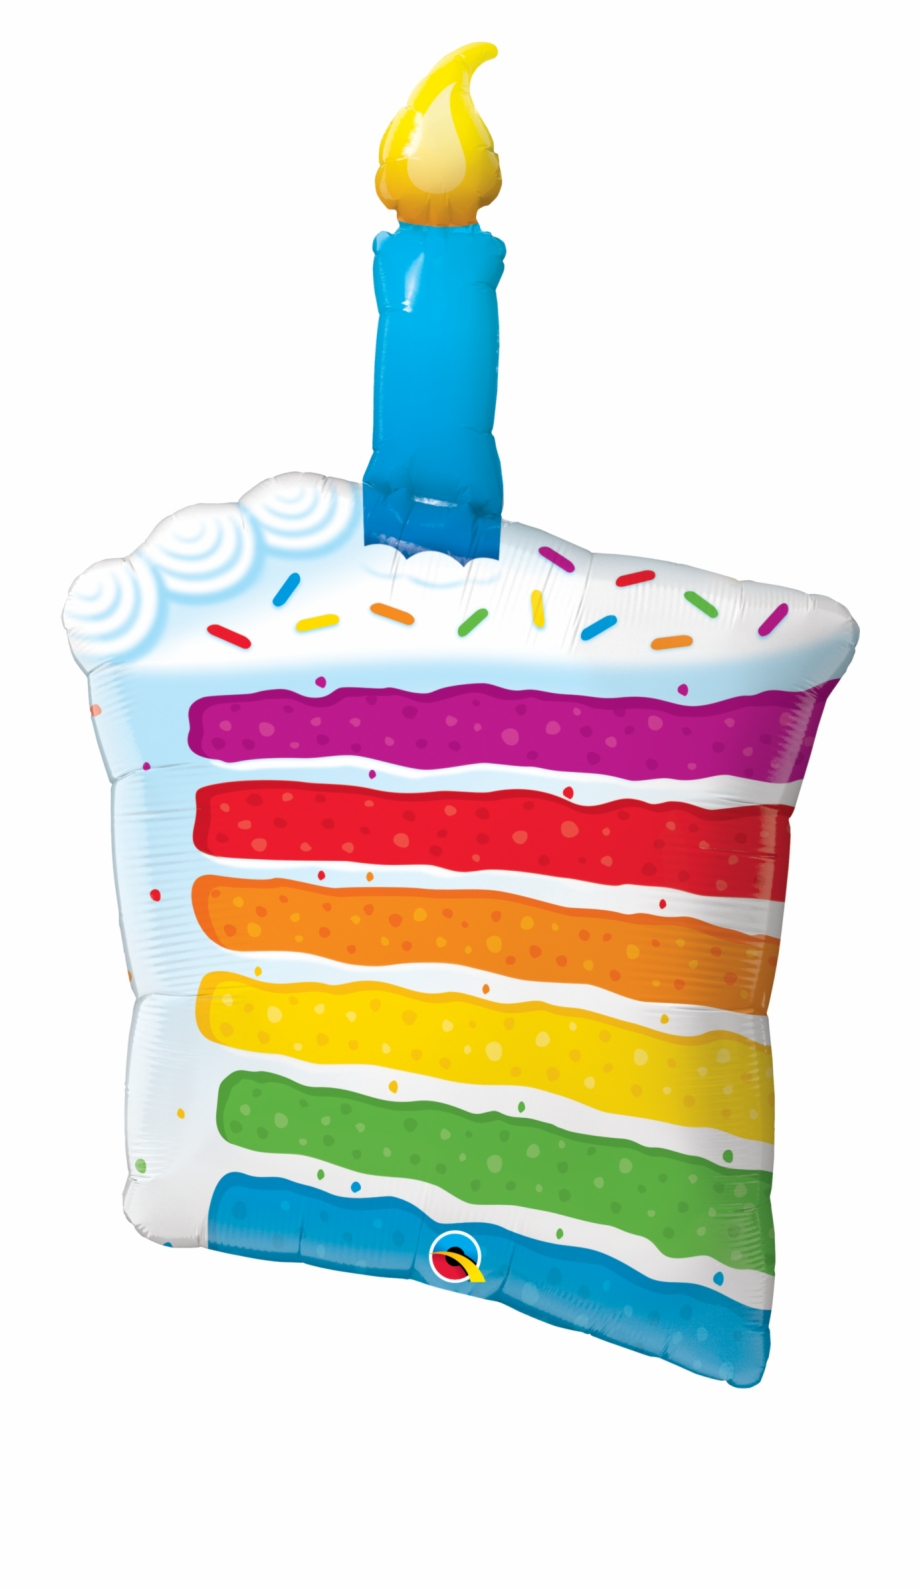 Graphic Free Download Rainbow Cake Clipart - Happy Birthday ... clip art library stock